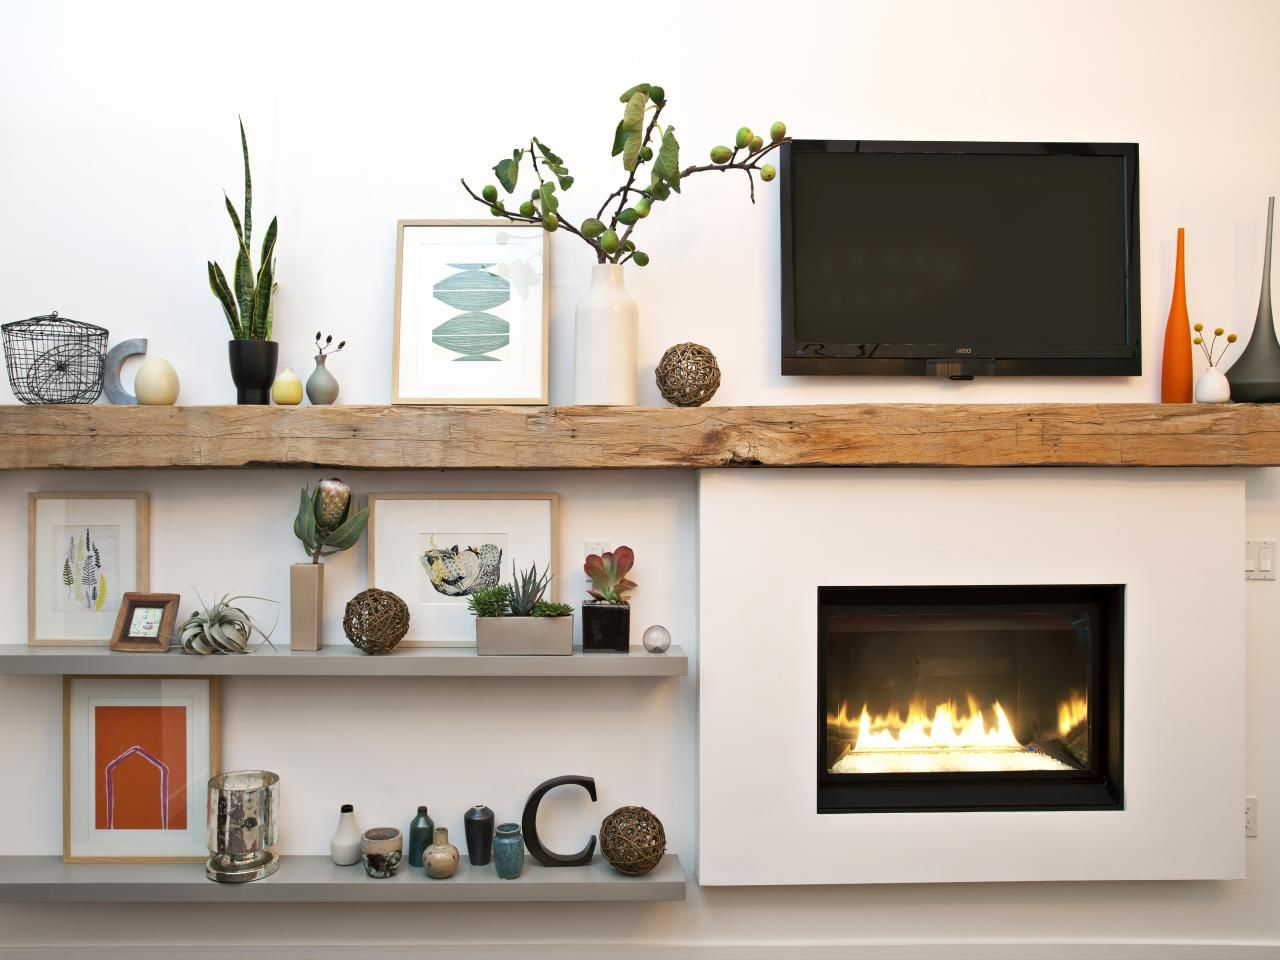 How To Decorate Fireplace 21 Tips To Diy And Decorate Your Fireplace Mantel Shelf